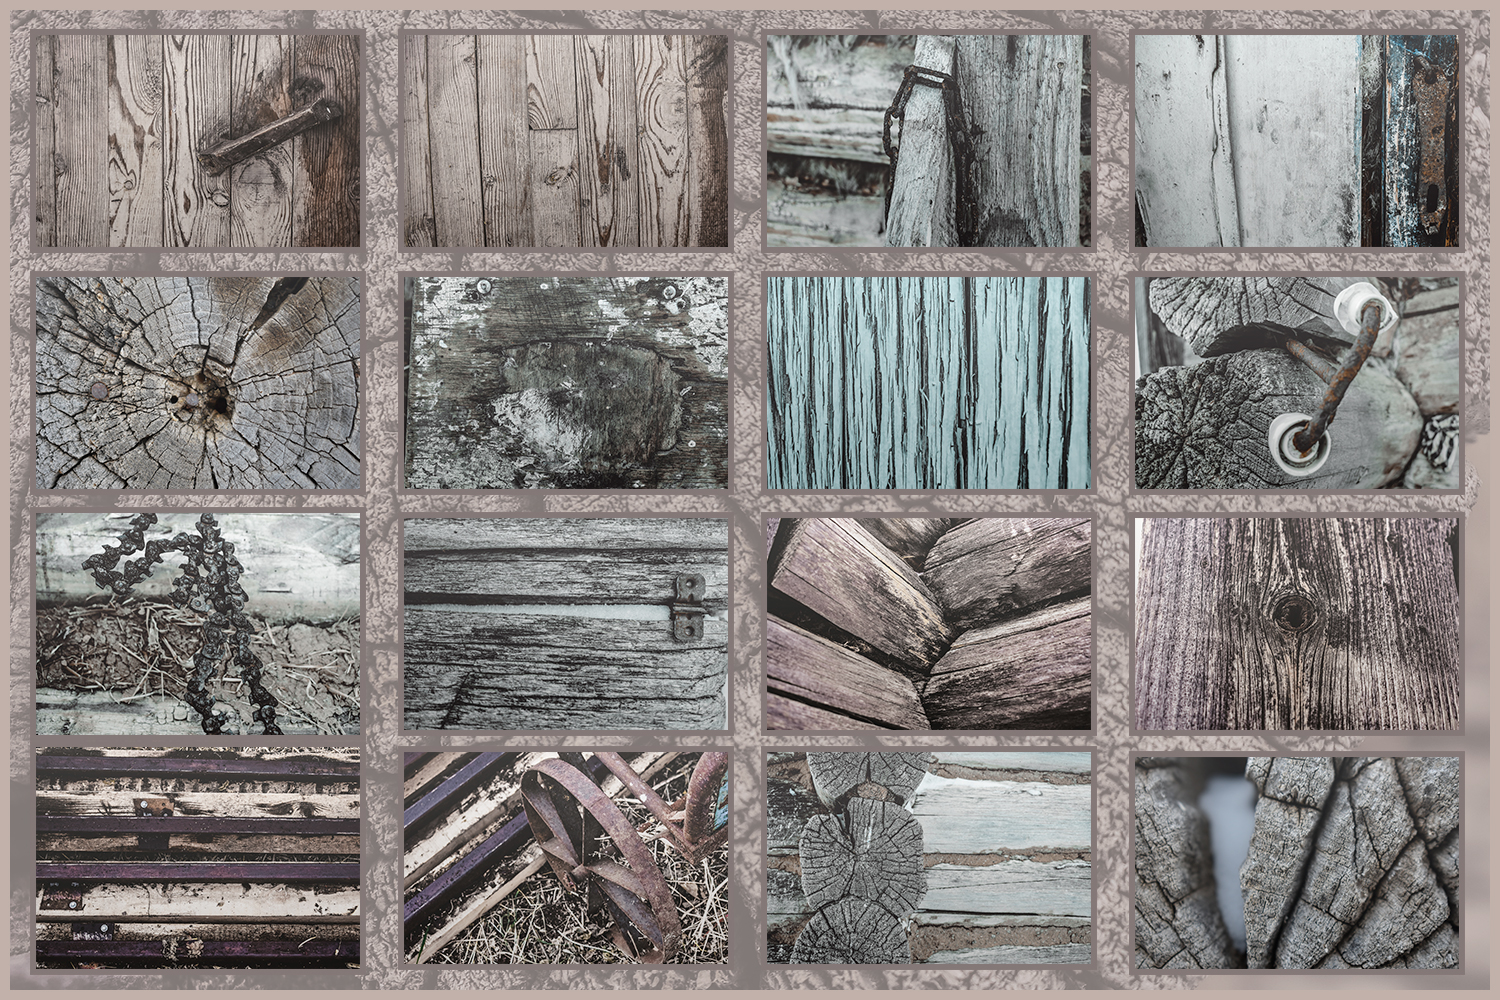 83 rustic woods photo textures pack overlays backgrounds example image 2